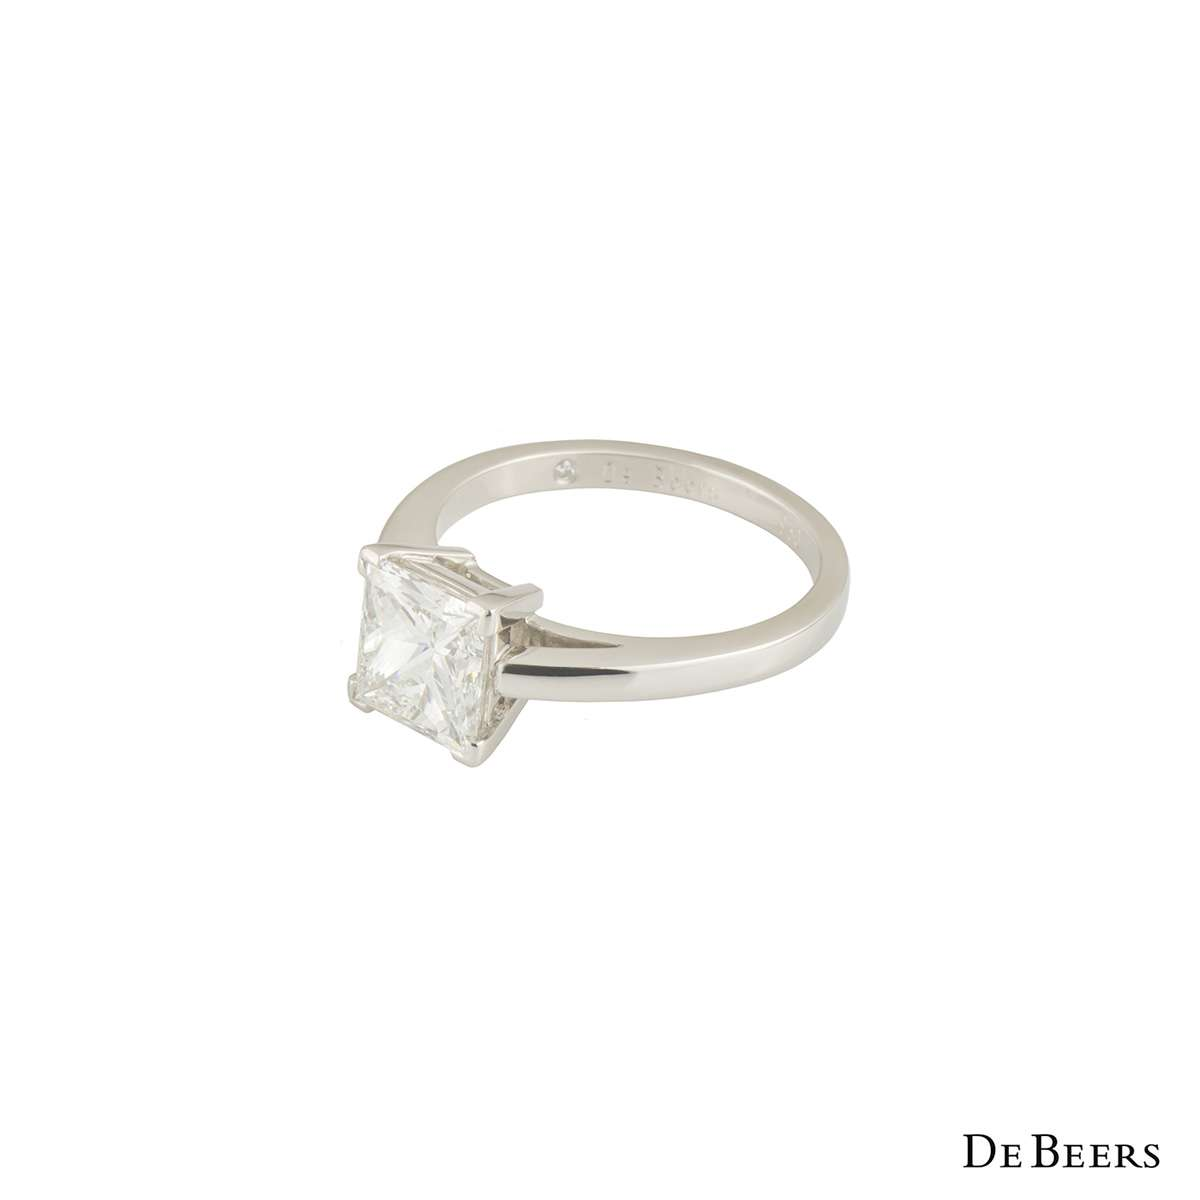 De Beers Diamond Platinum Princess Cut Ring 2.50ct G/VVS1